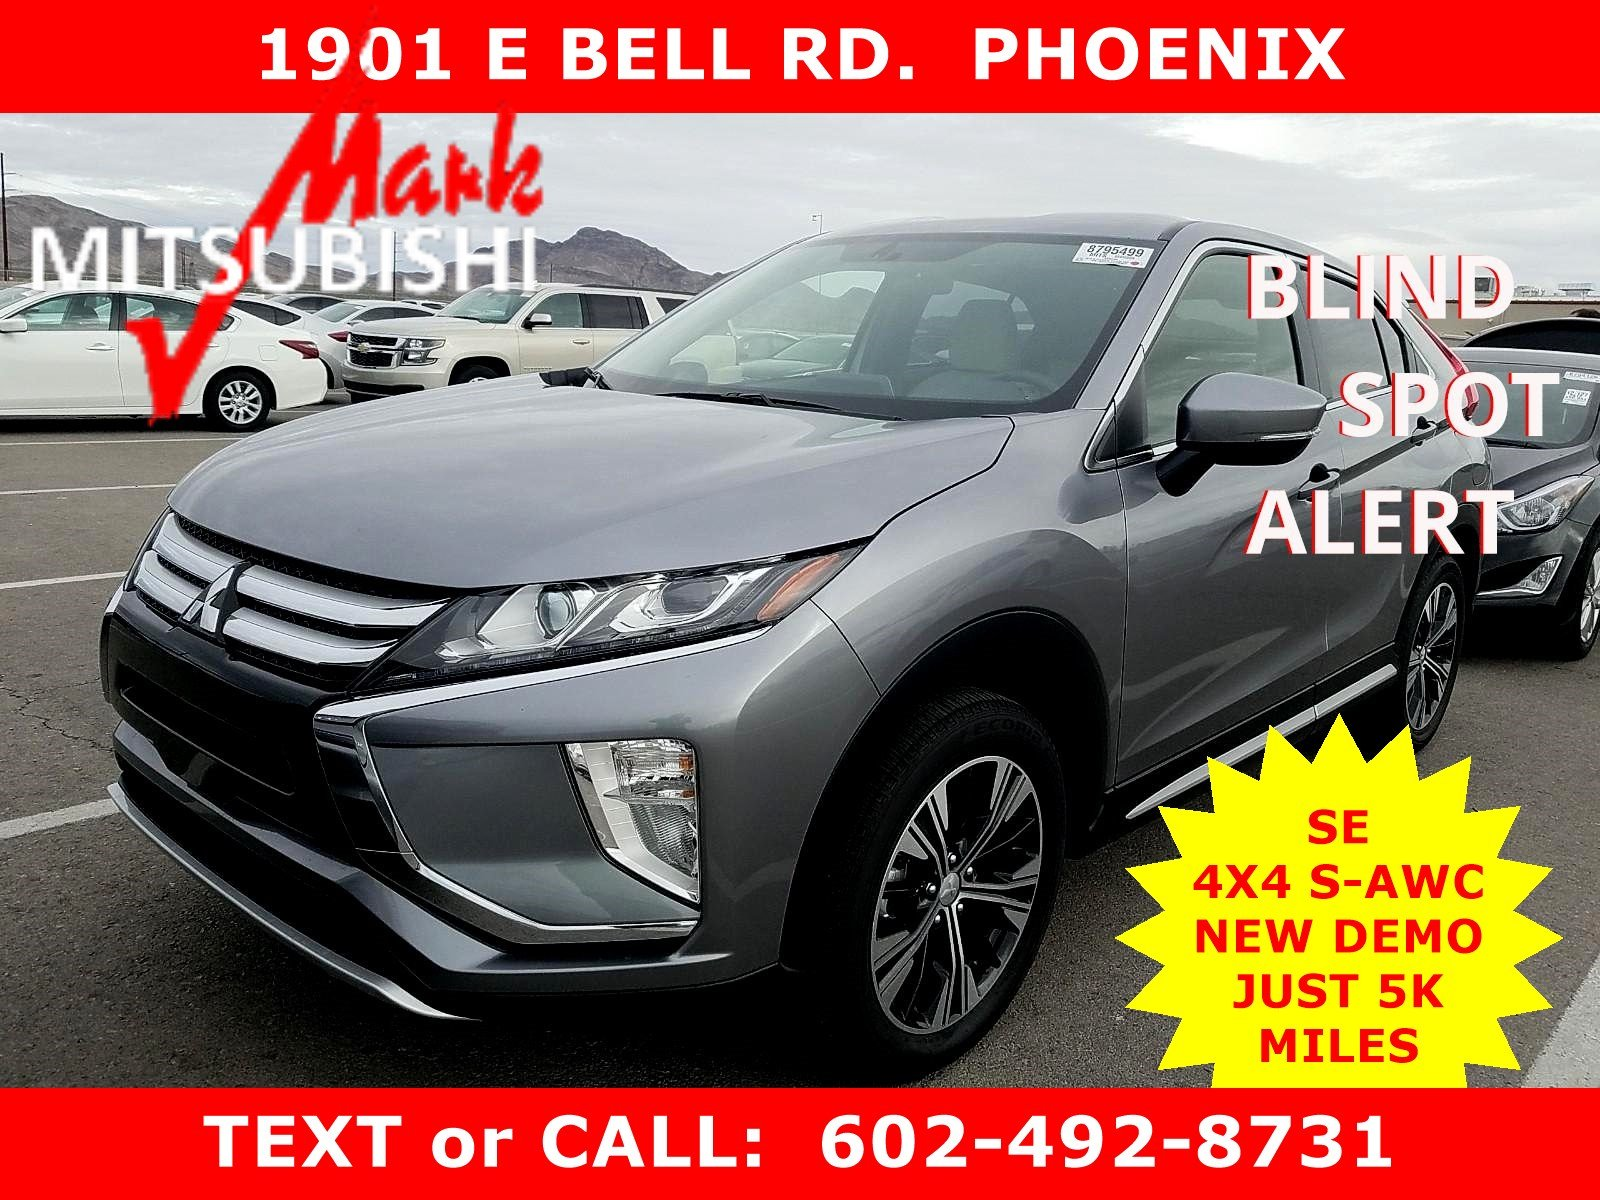 Pre-Owned 2018 Mitsubishi Eclipse Cross SE 4X4 AWC